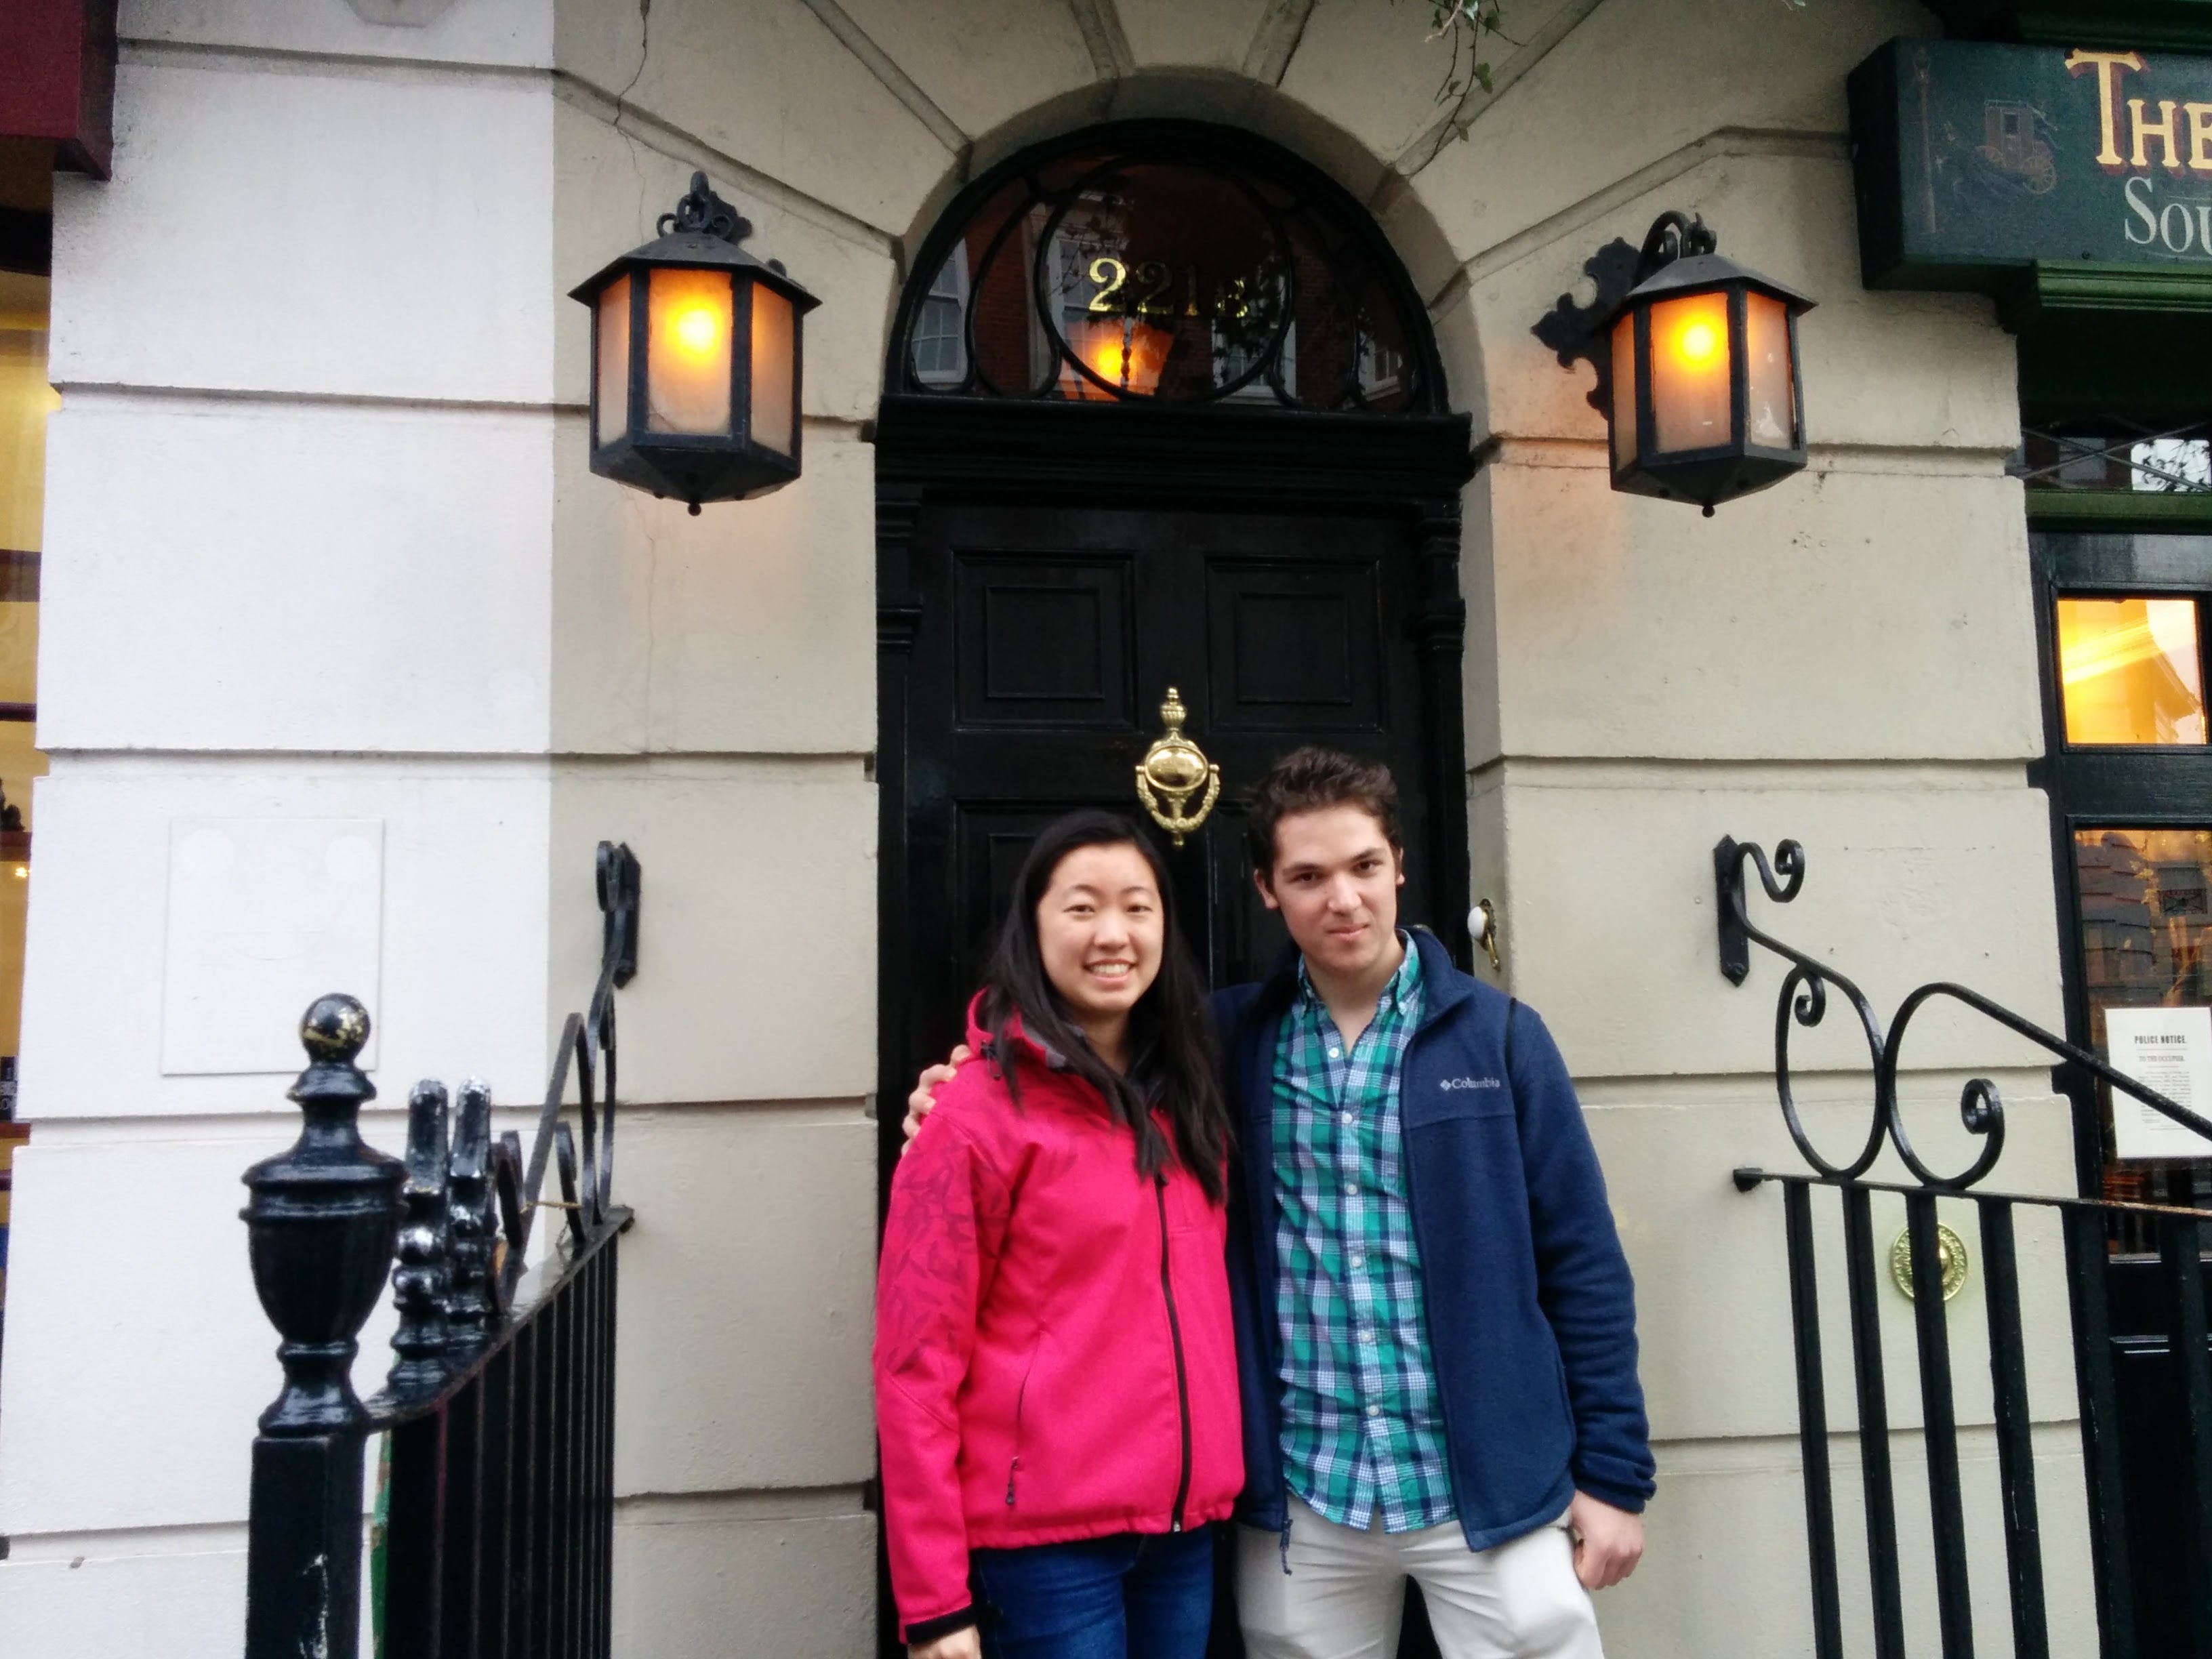 Janos and I make a house call at 221b Baker Street, residence of Sherlock Holmes